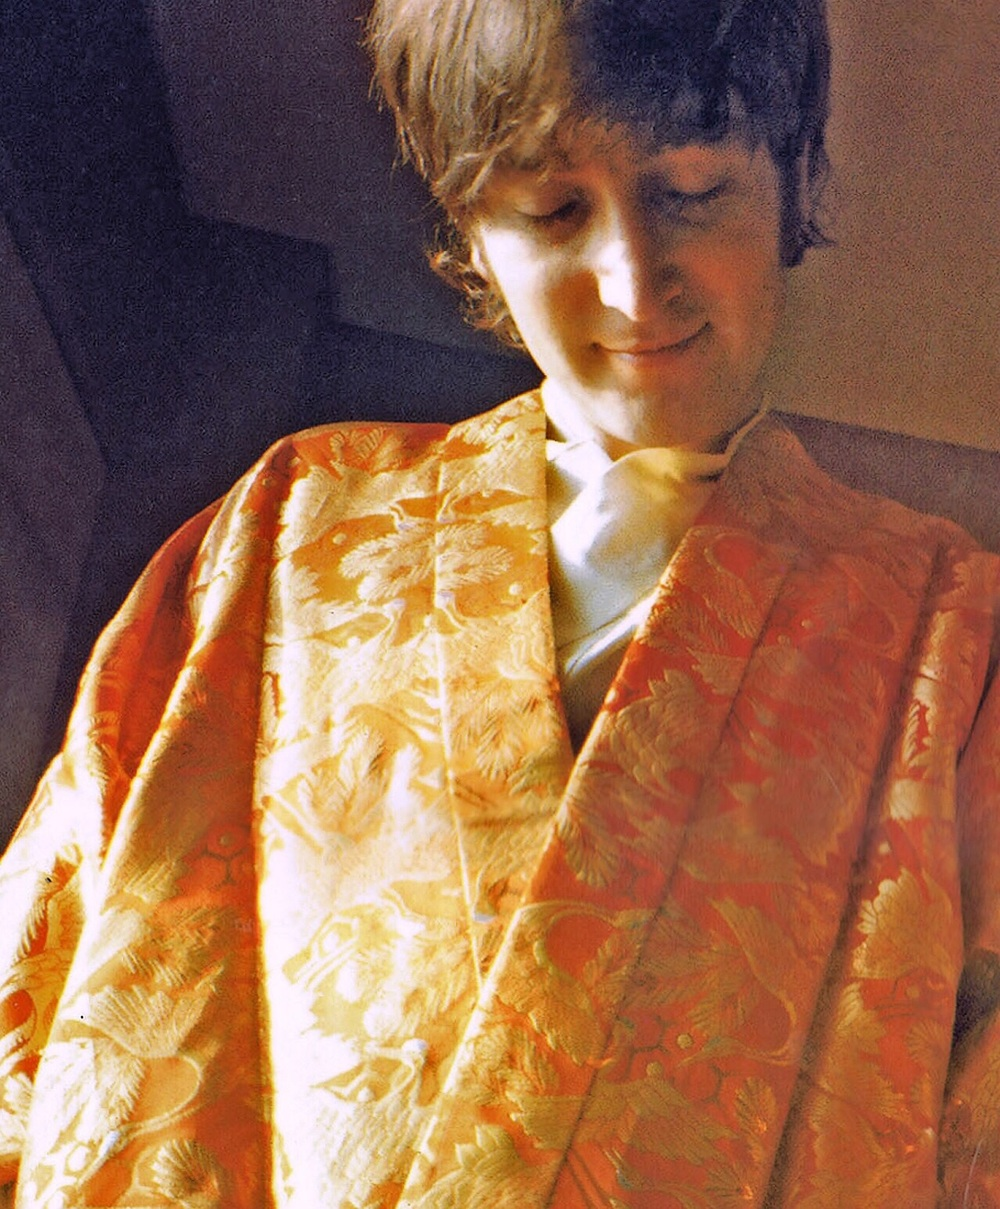 John Lennon in the Presidential Suite of the Tokyo Hilton, June 1966.